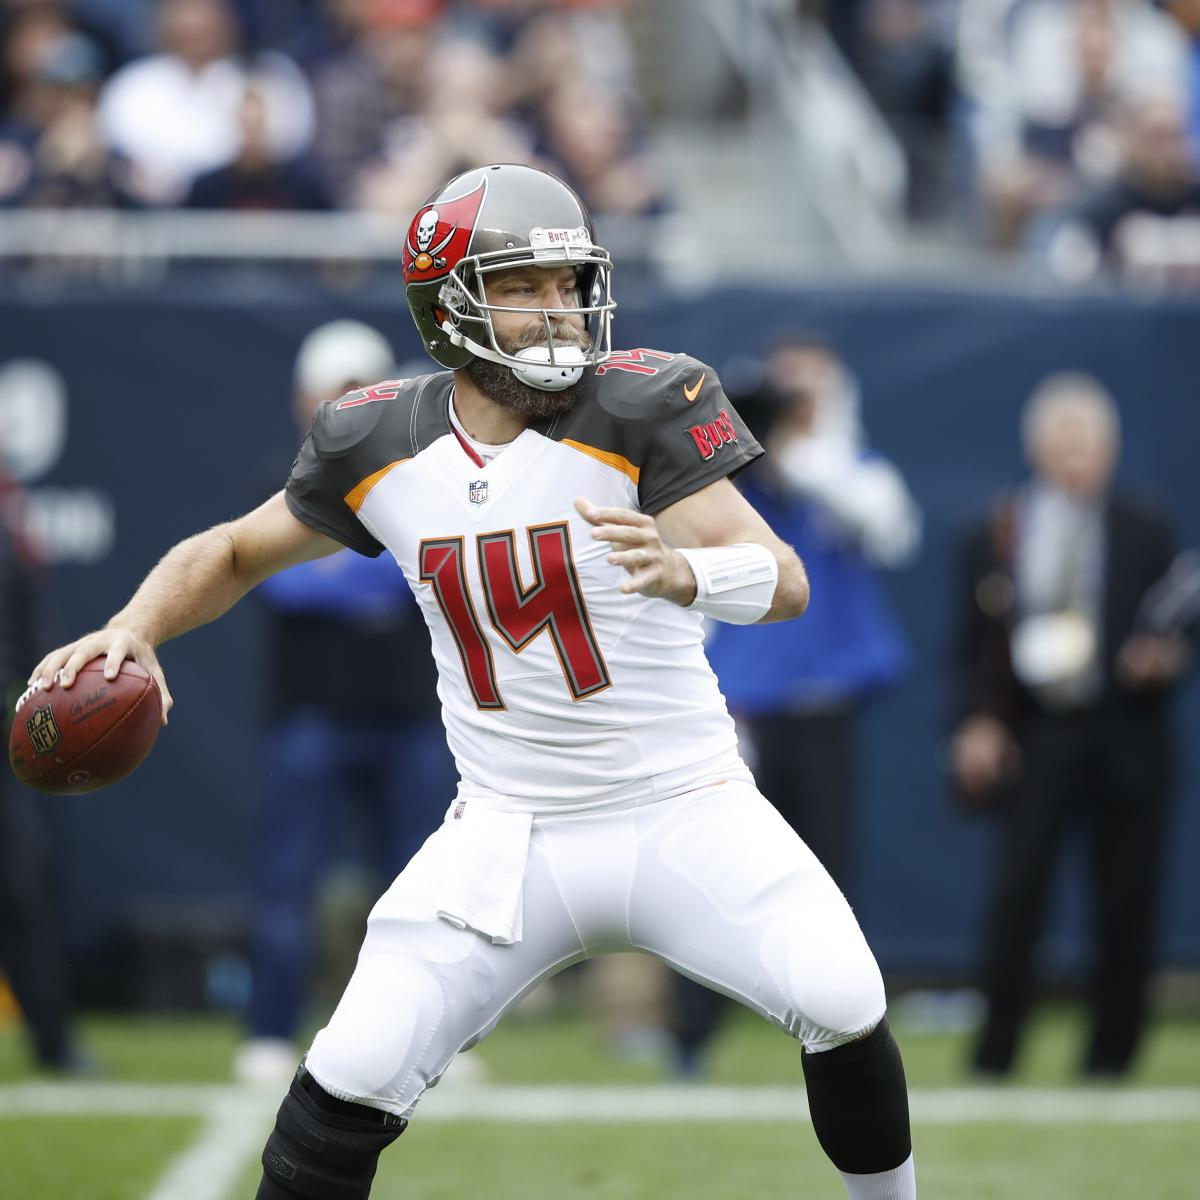 c2da11a2aaa Ryan Fitzpatrick's Fantasy Outlook After Being Named Starter over Jameis  Winston